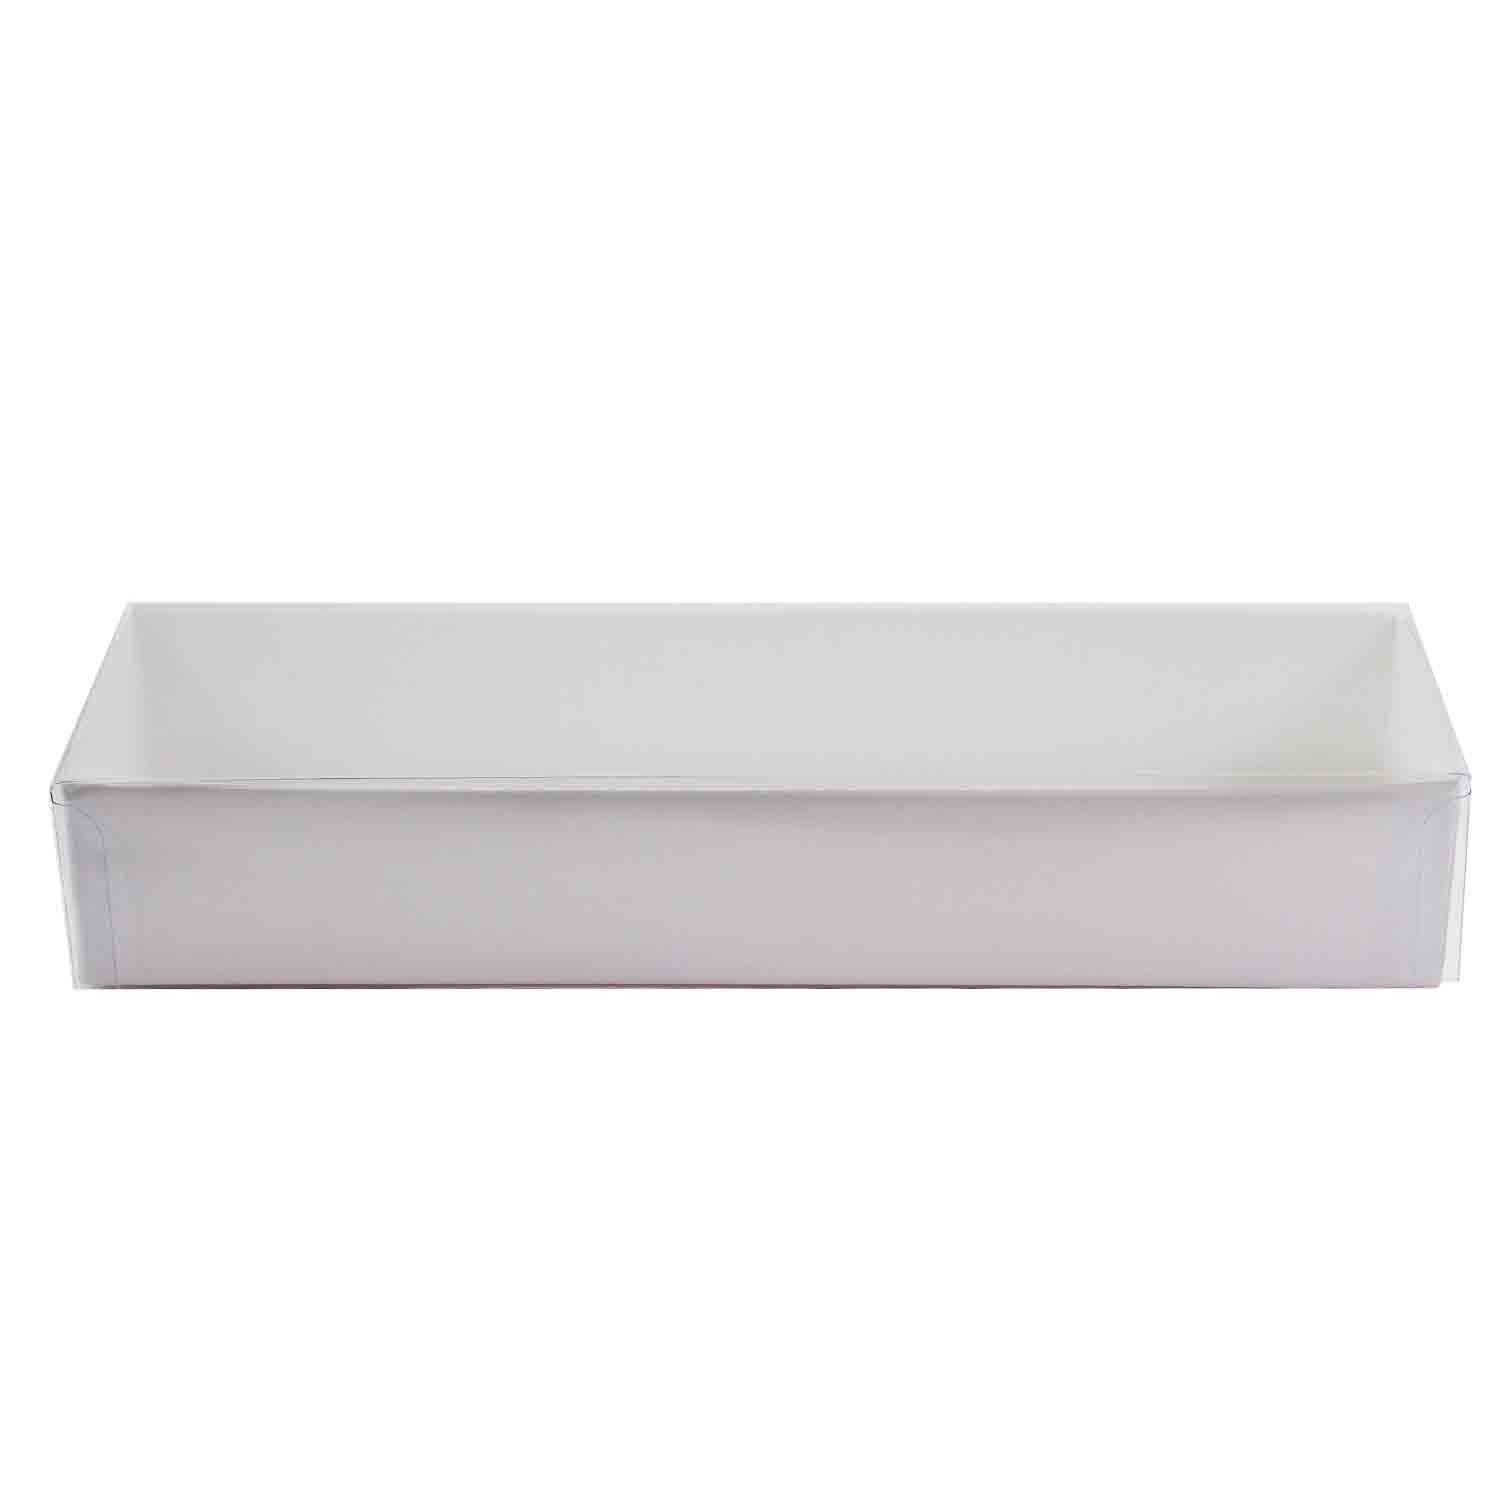 1/2 lb. White Candy Box with Clear Lid